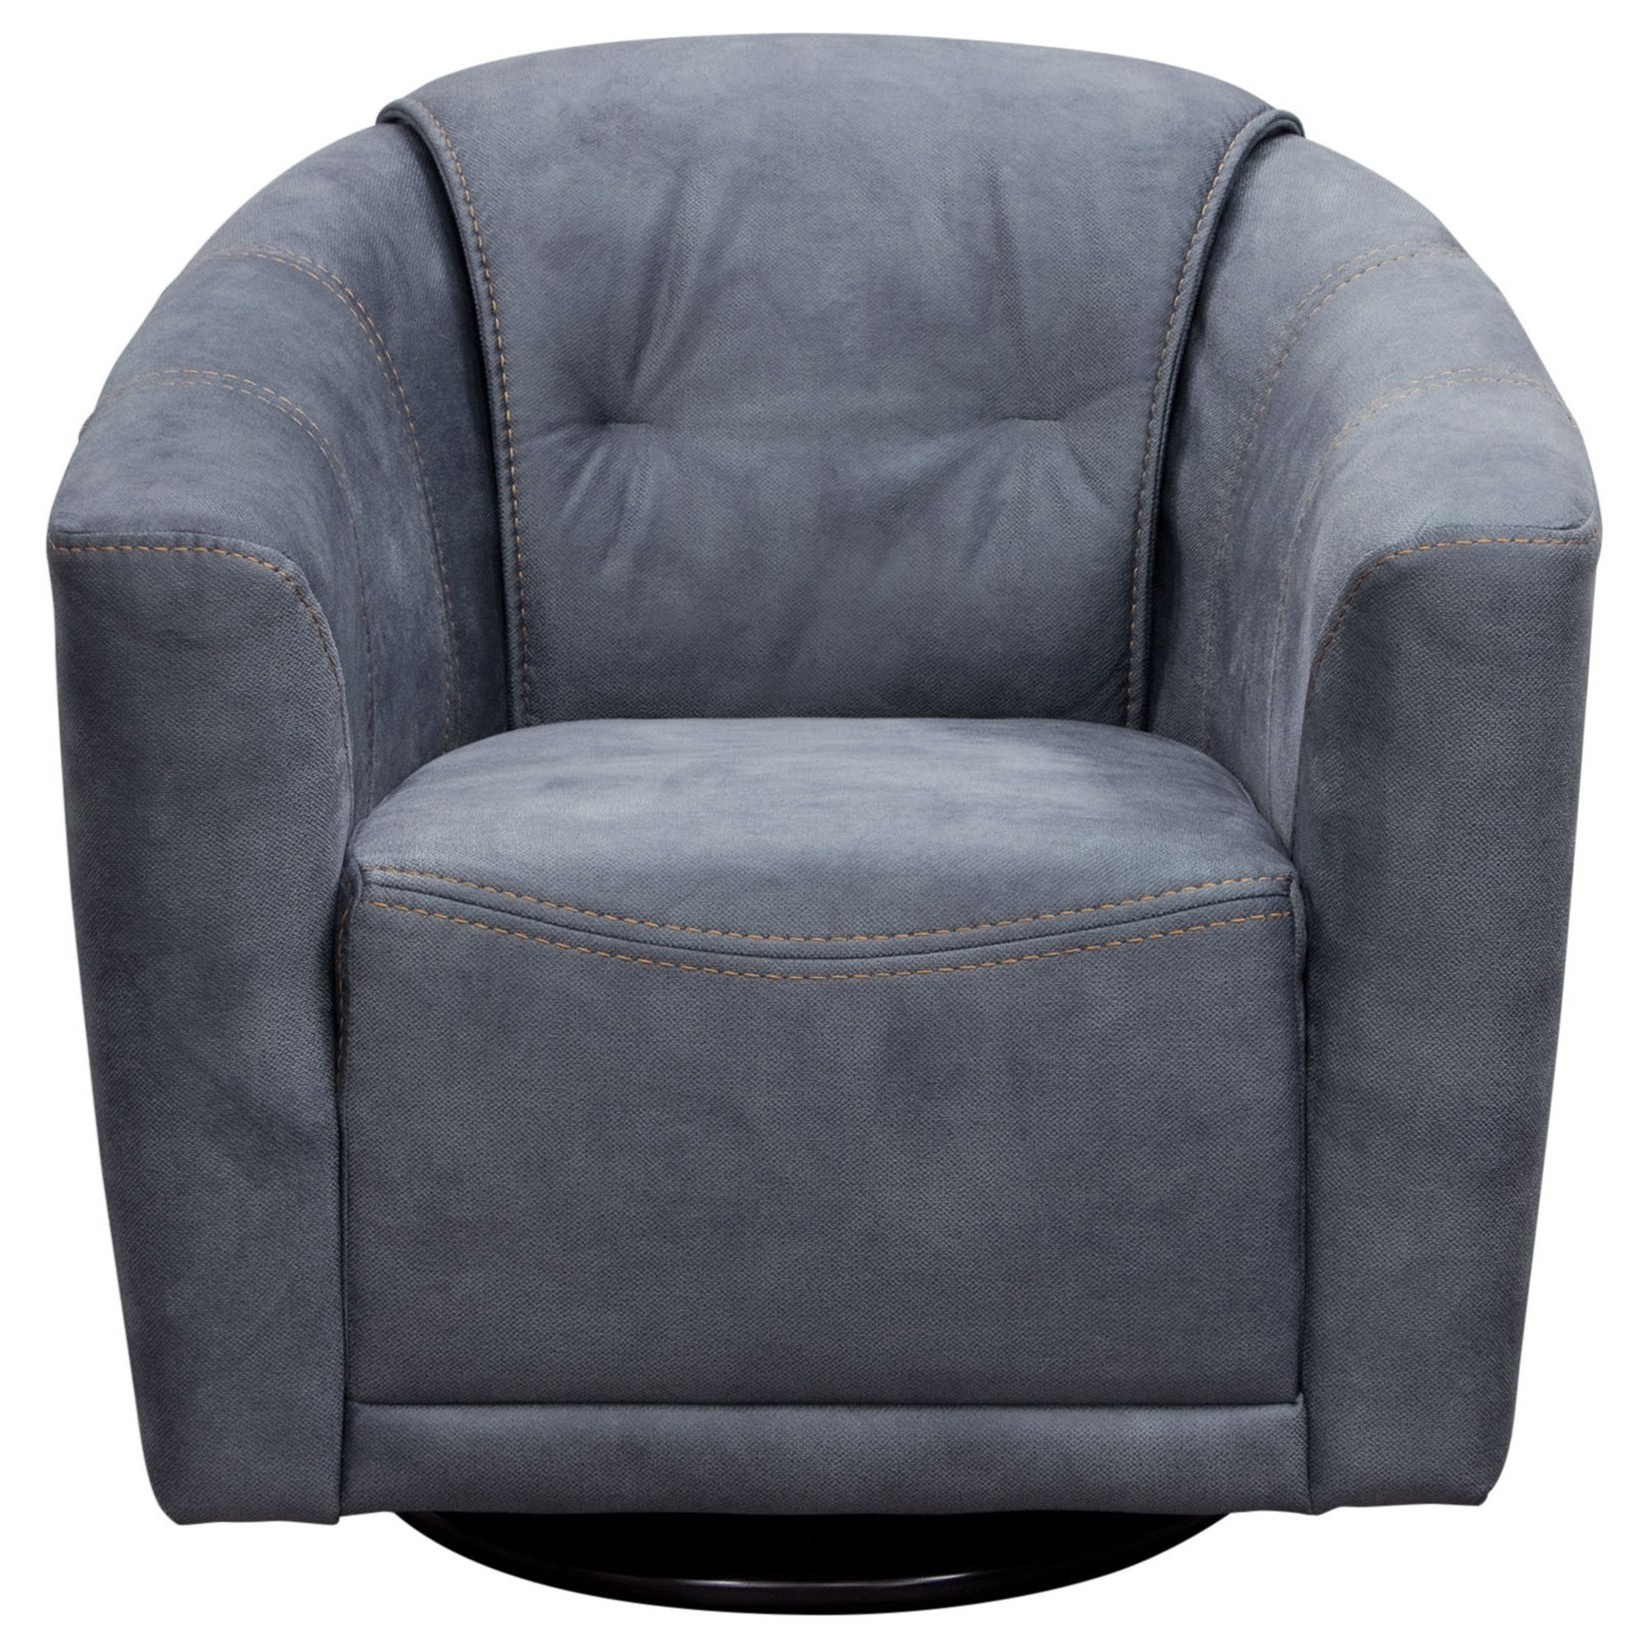 2019 Umber Grey Swivel Accent Chairs Intended For Diamond Sofa Accent Chairs Murphychgr Swivel Accent Chair In Light (Gallery 5 of 20)